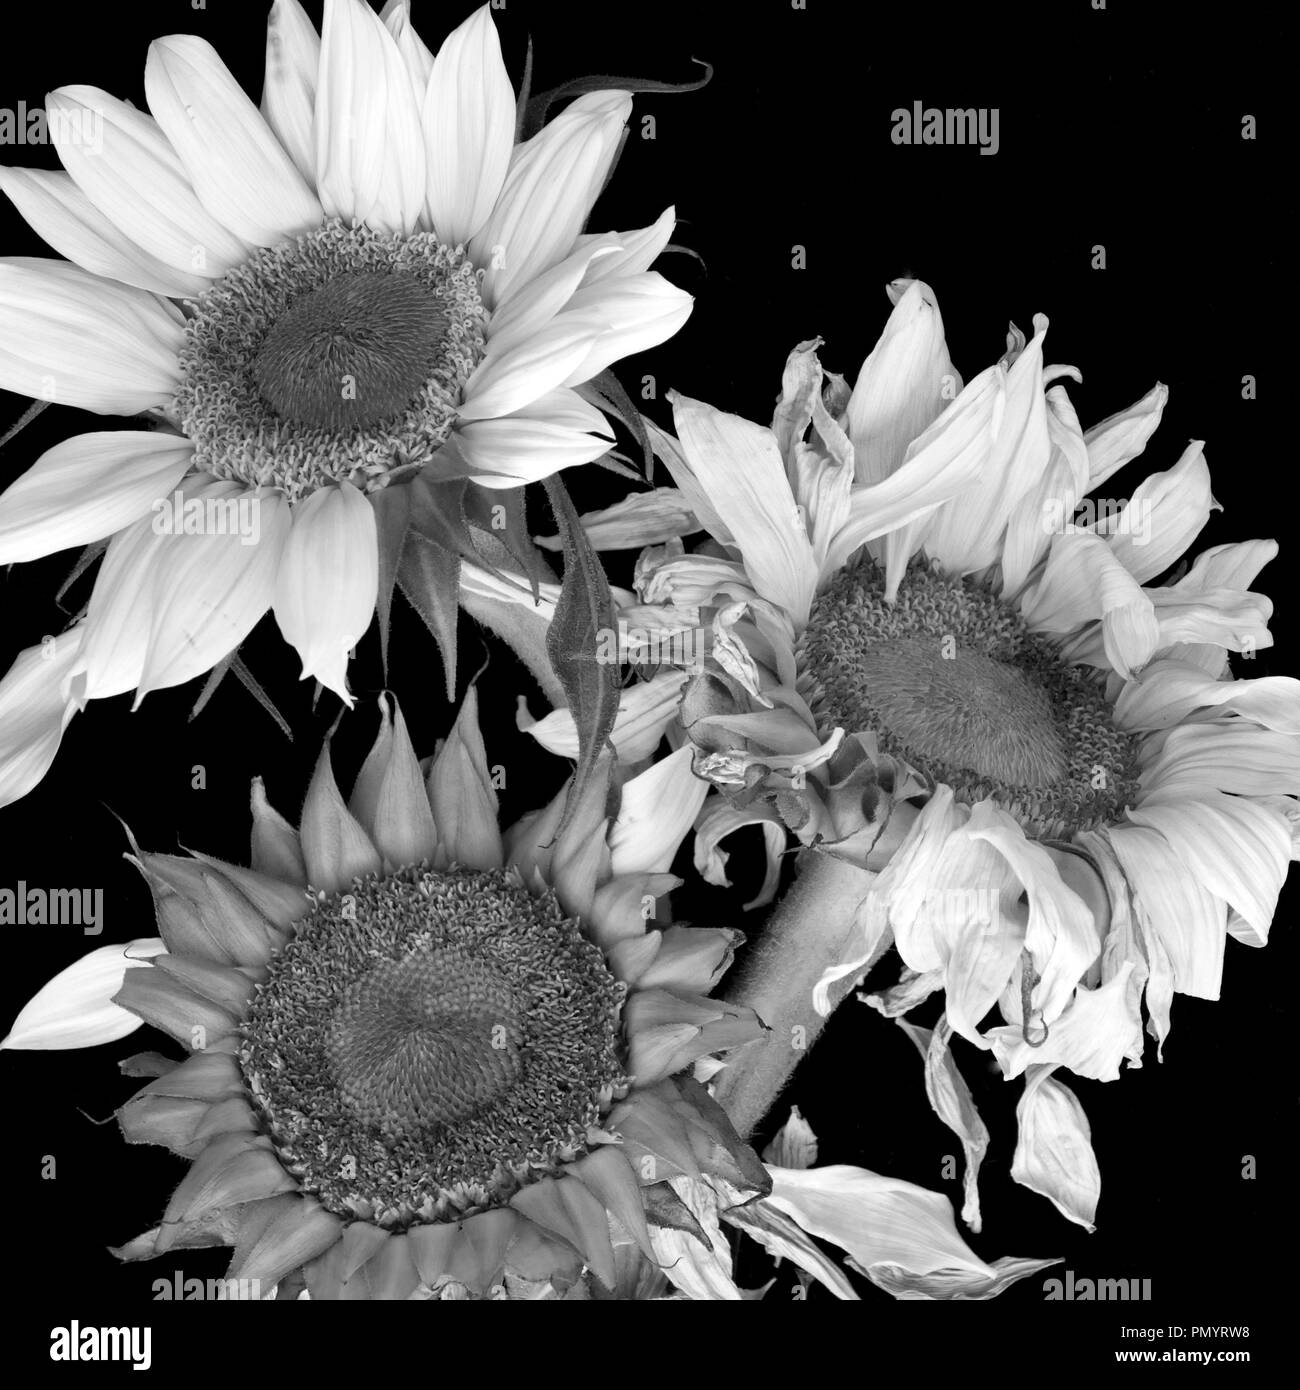 3 Black And White Sunflowers At Different Stages Of Life Stock Photo